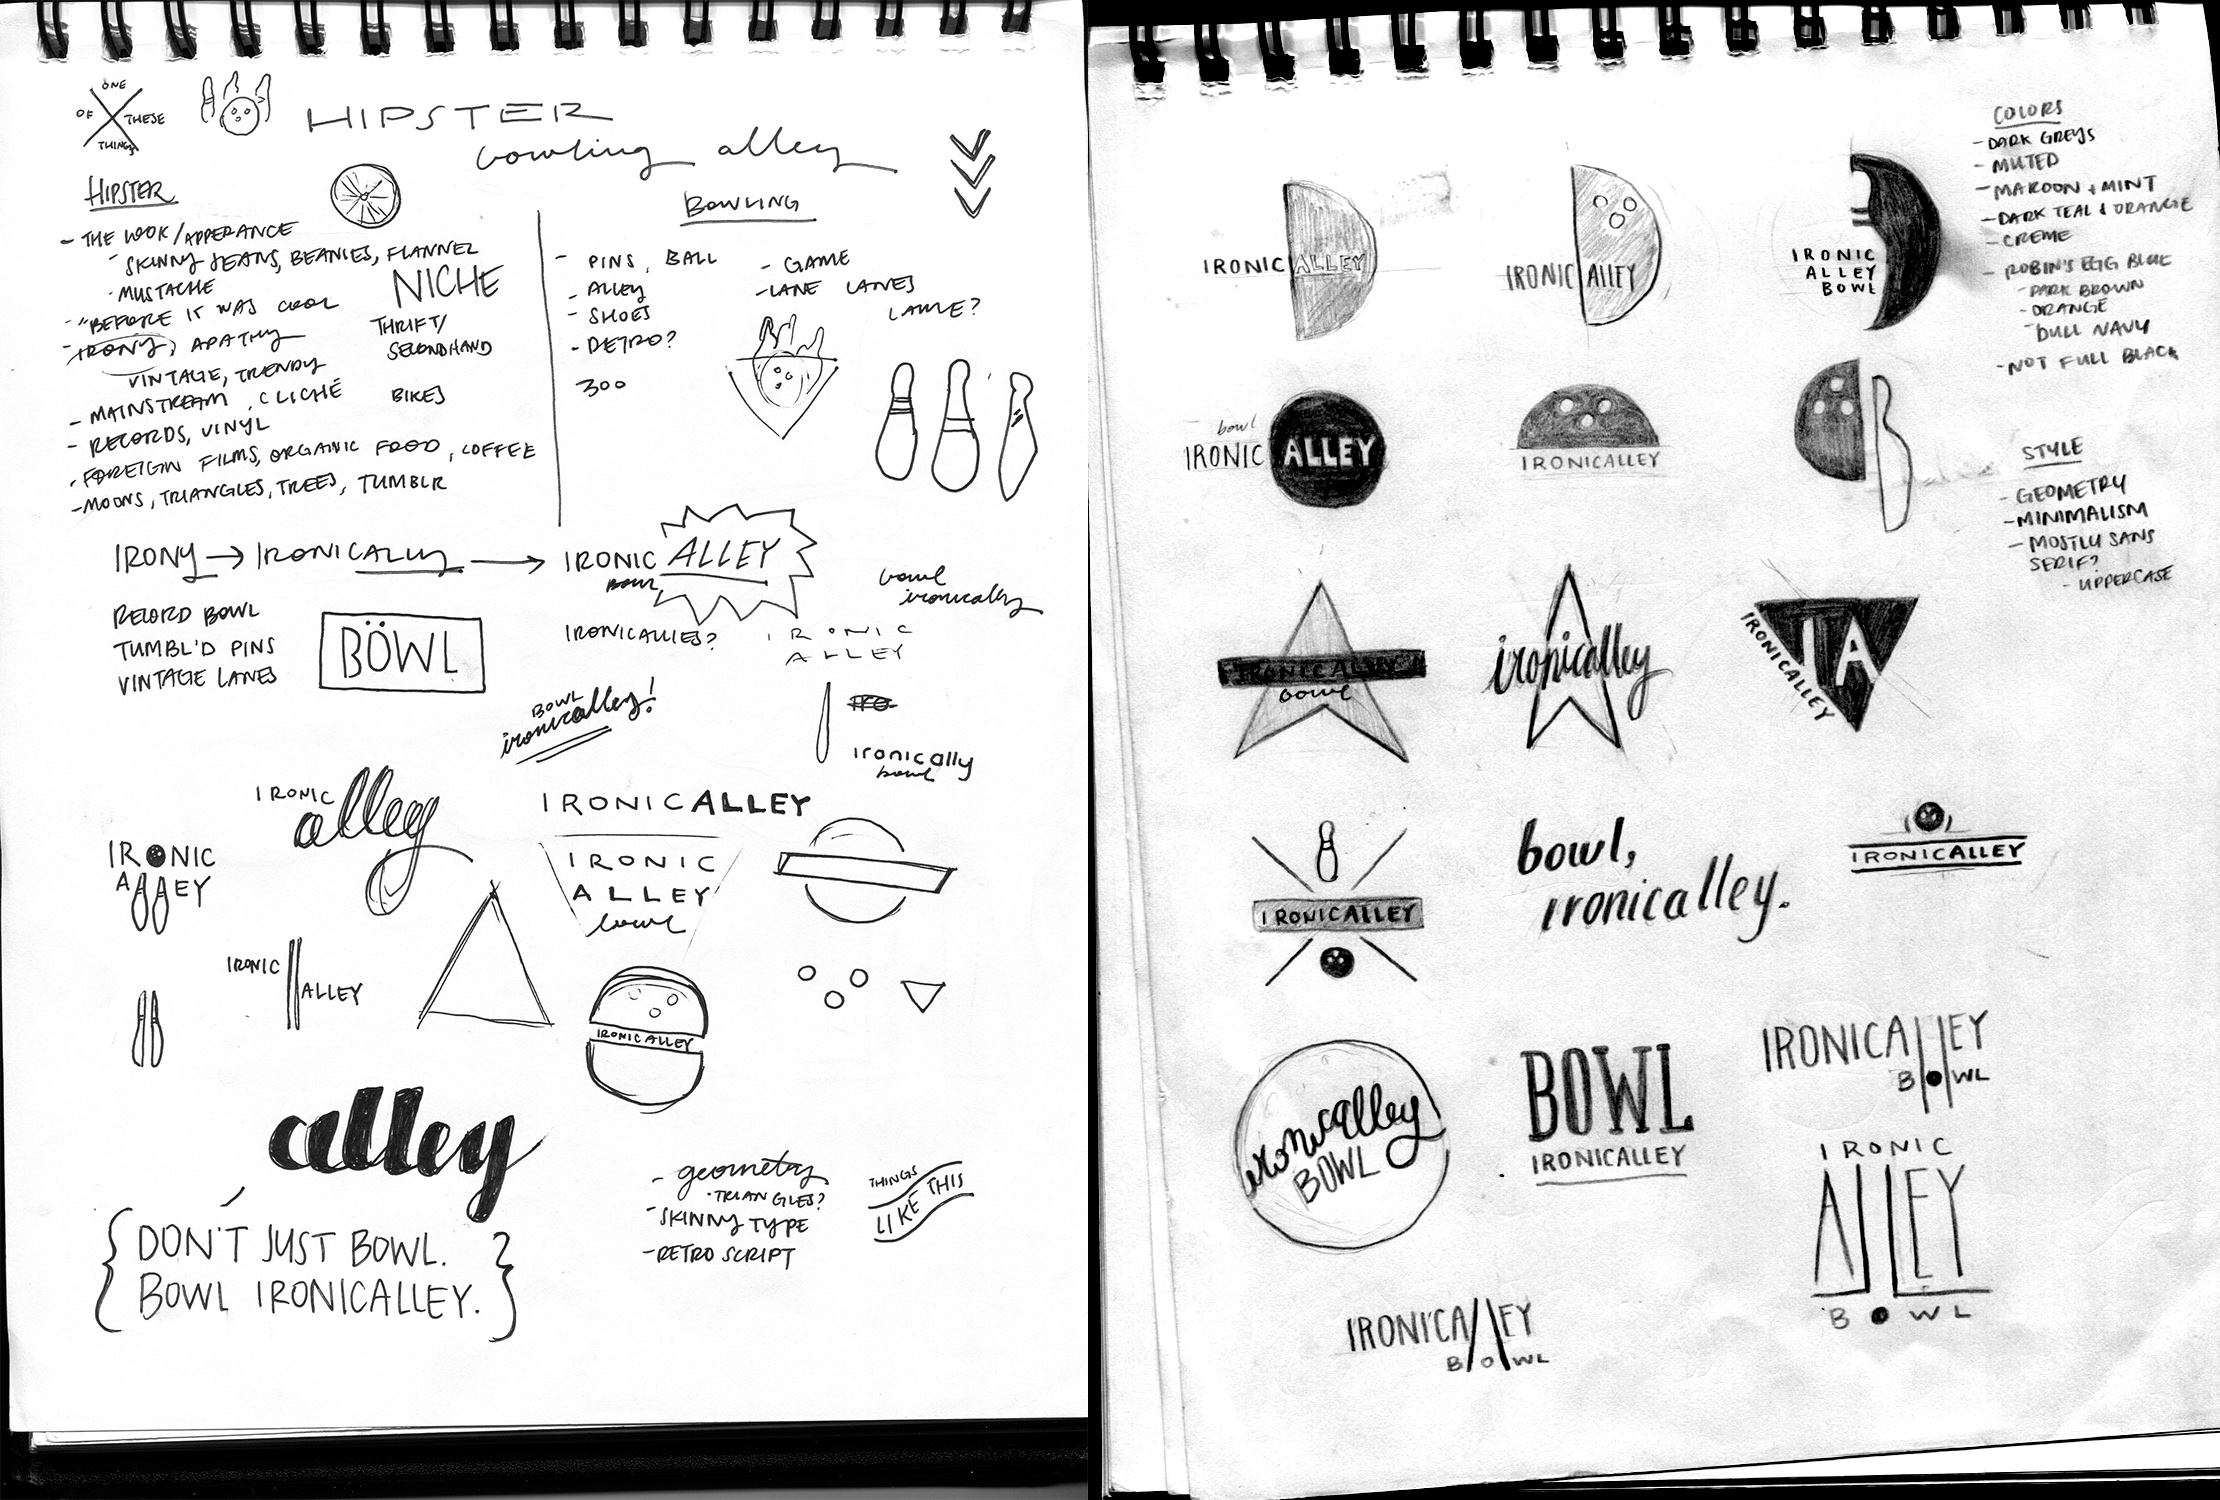 a little preliminary brainstorming